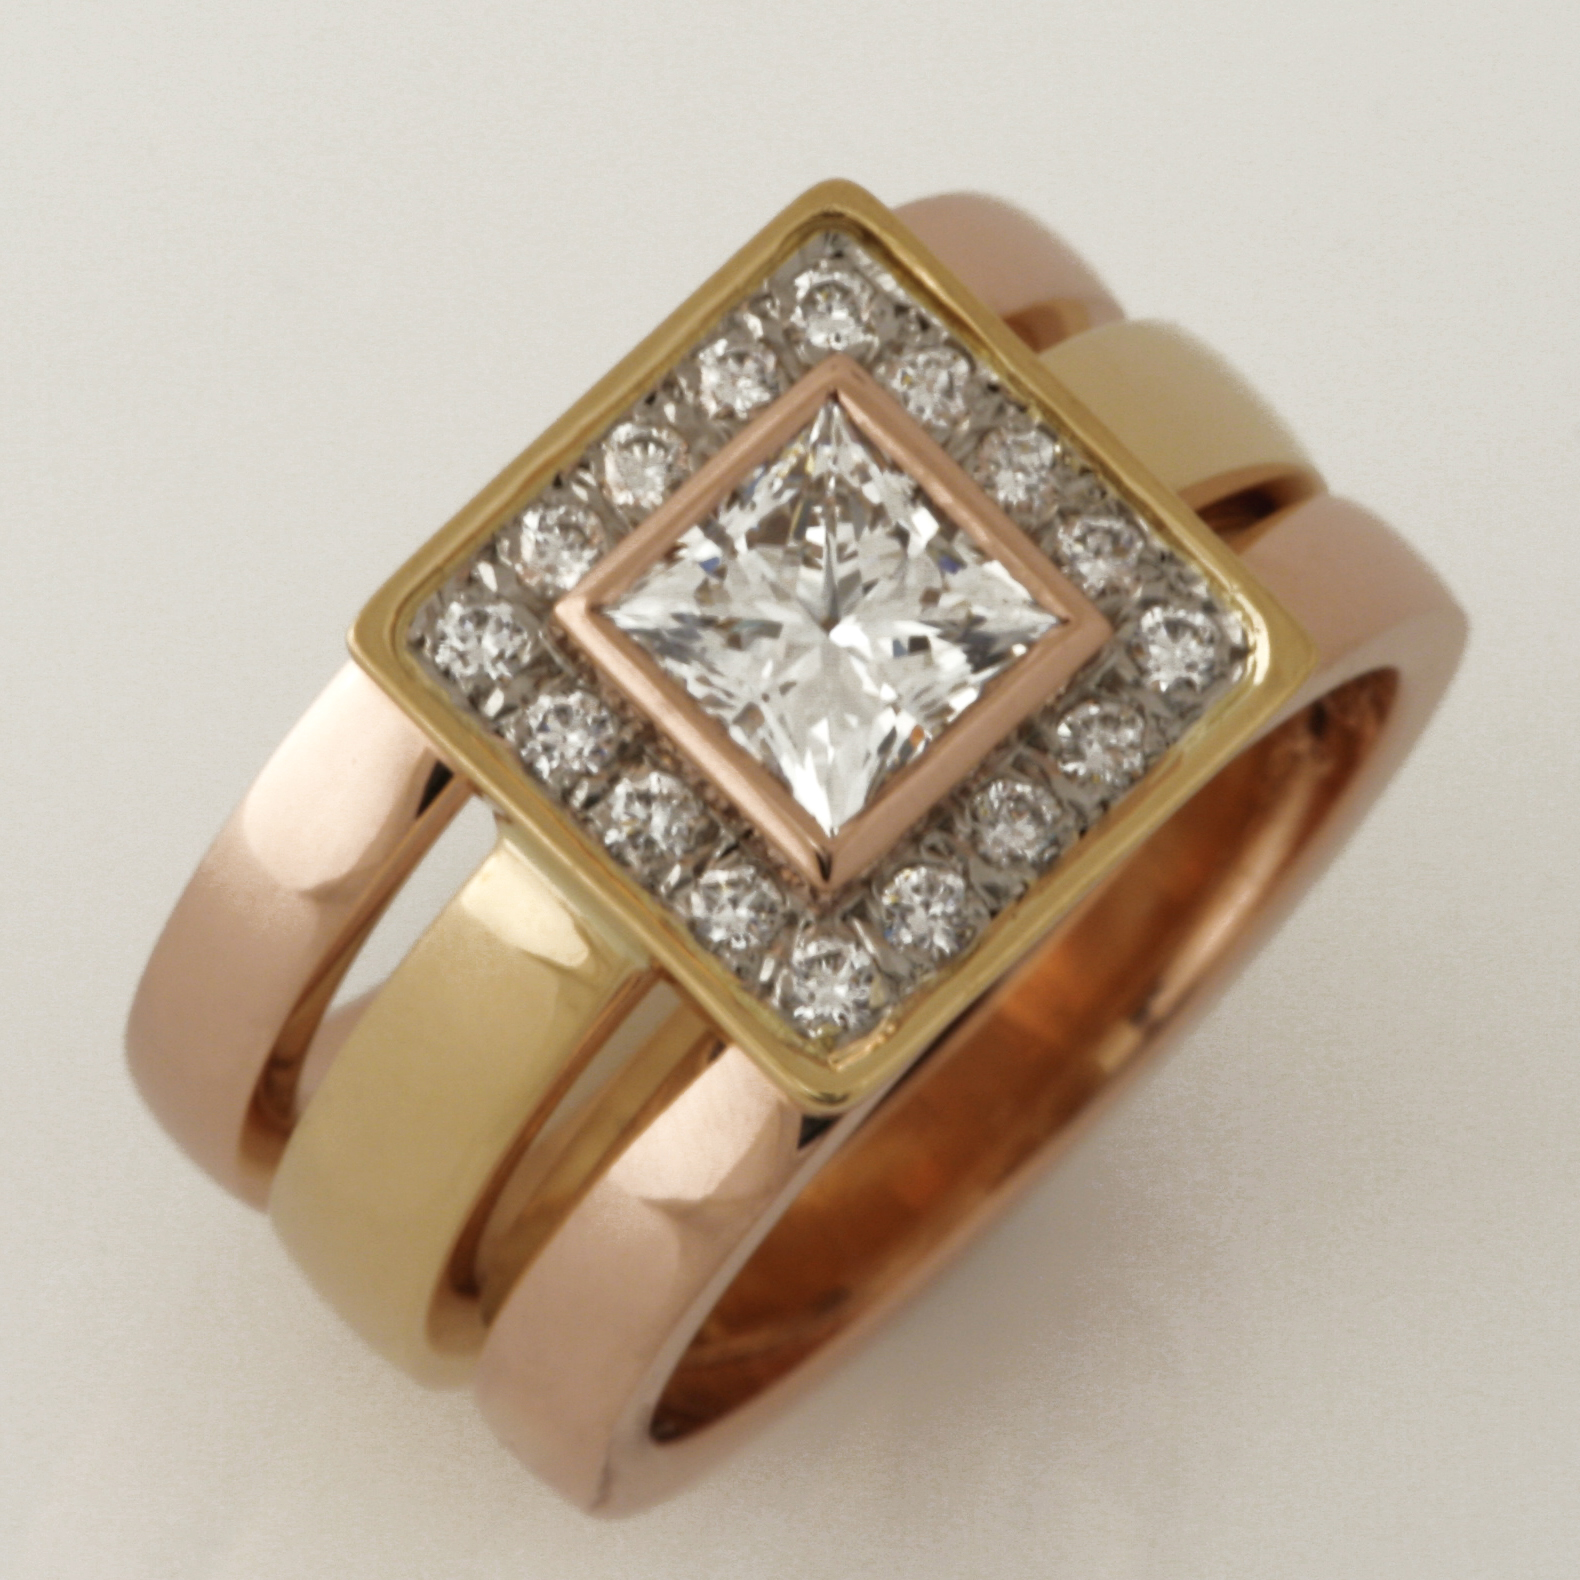 Handmade ladies 18ct yellow gold and rose gold diamond split wedding ring set